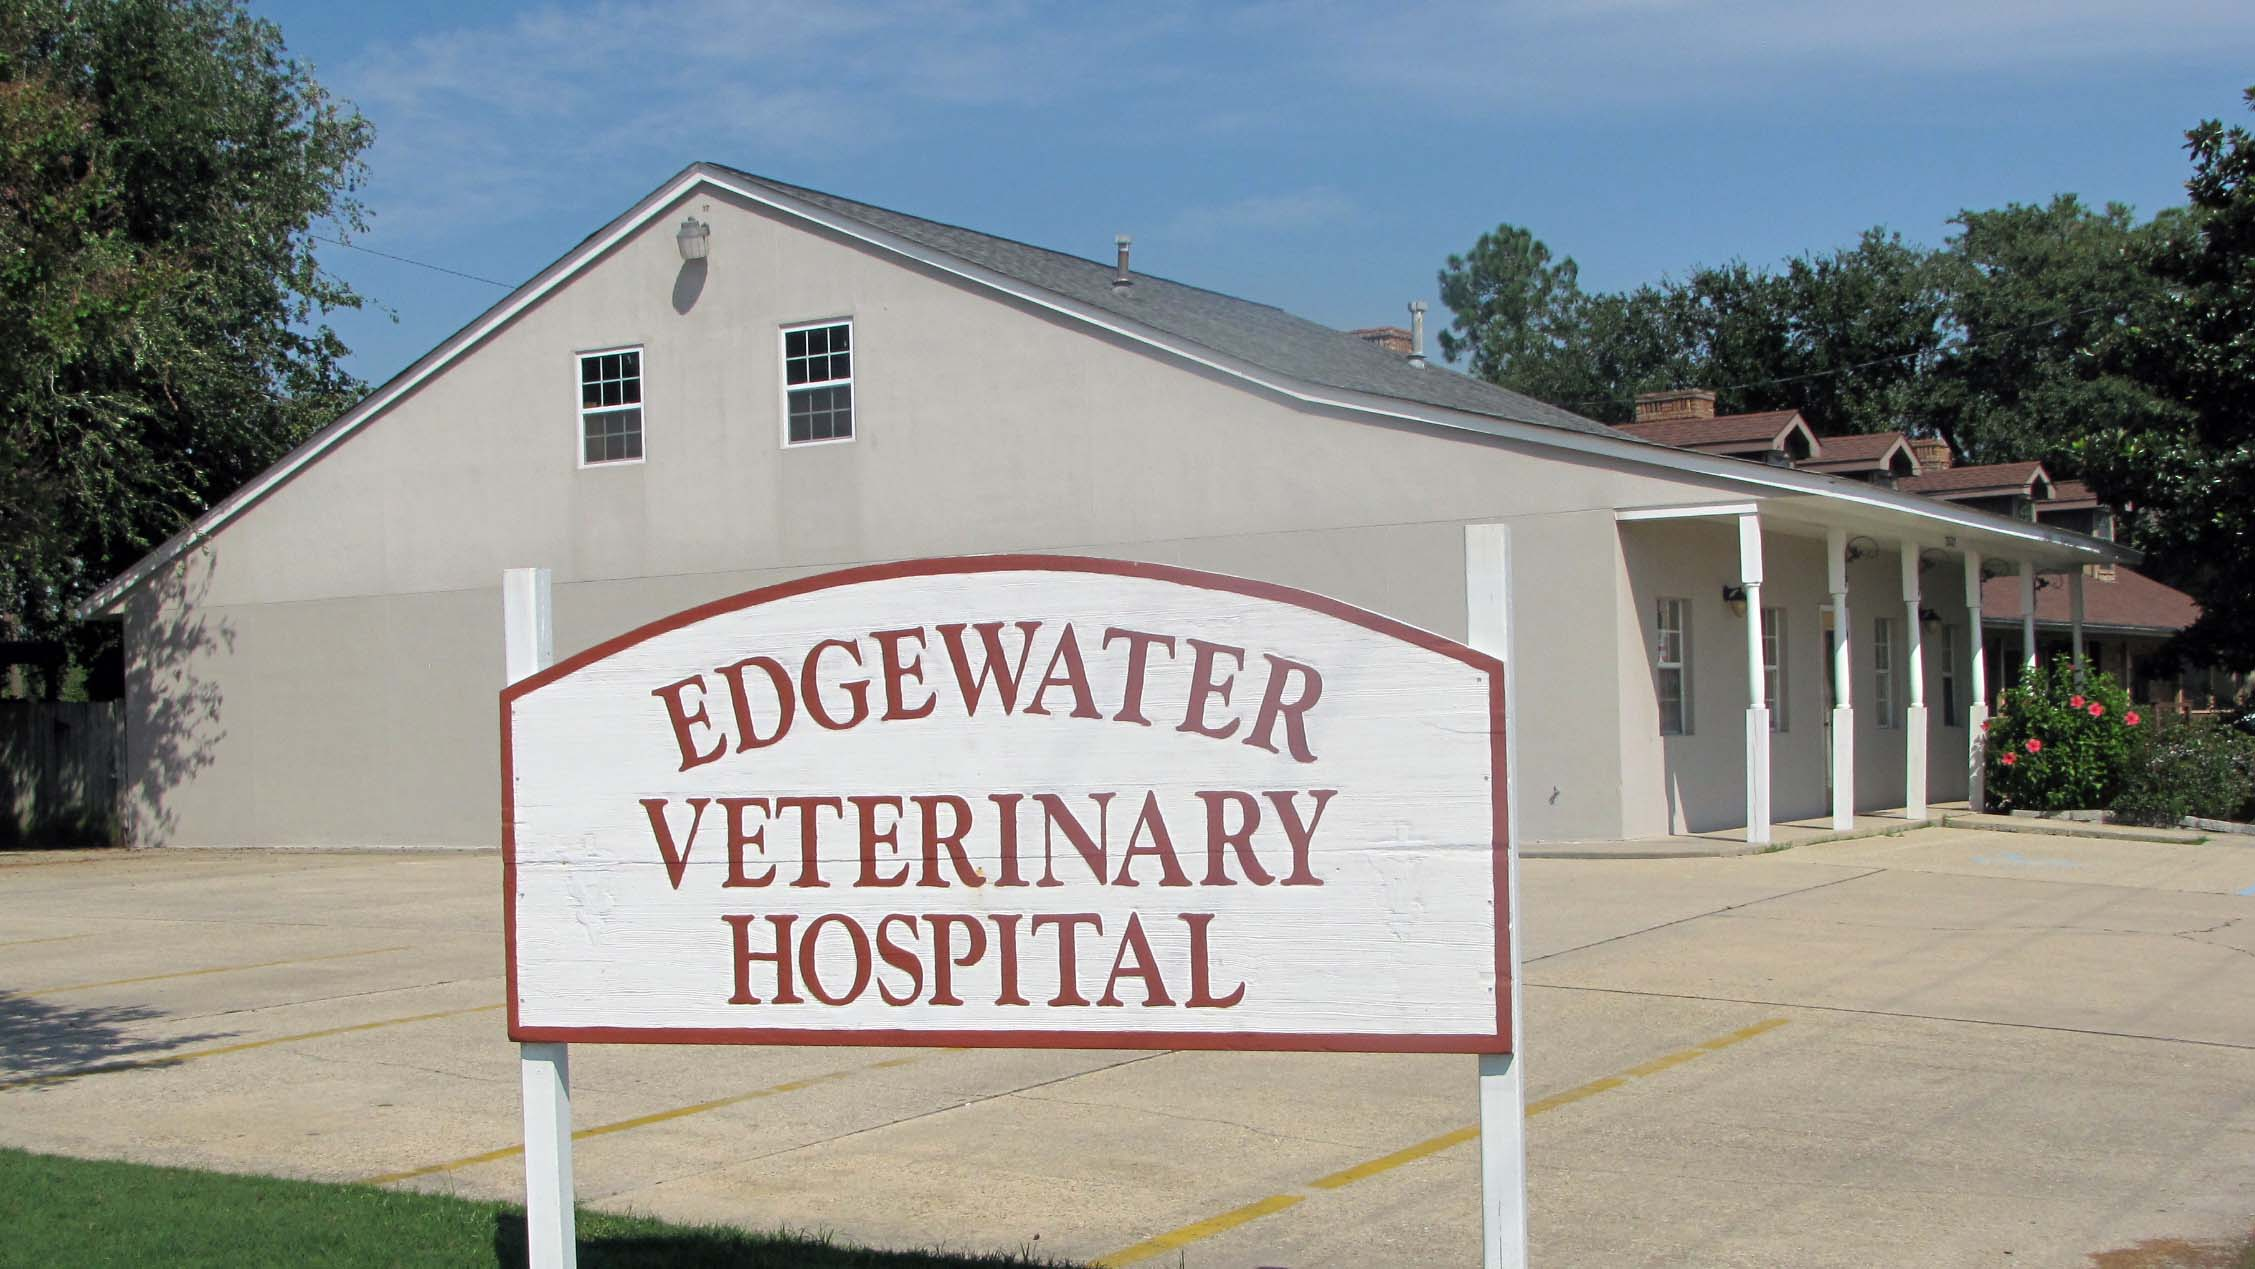 Edgewater Veterinary Hospital